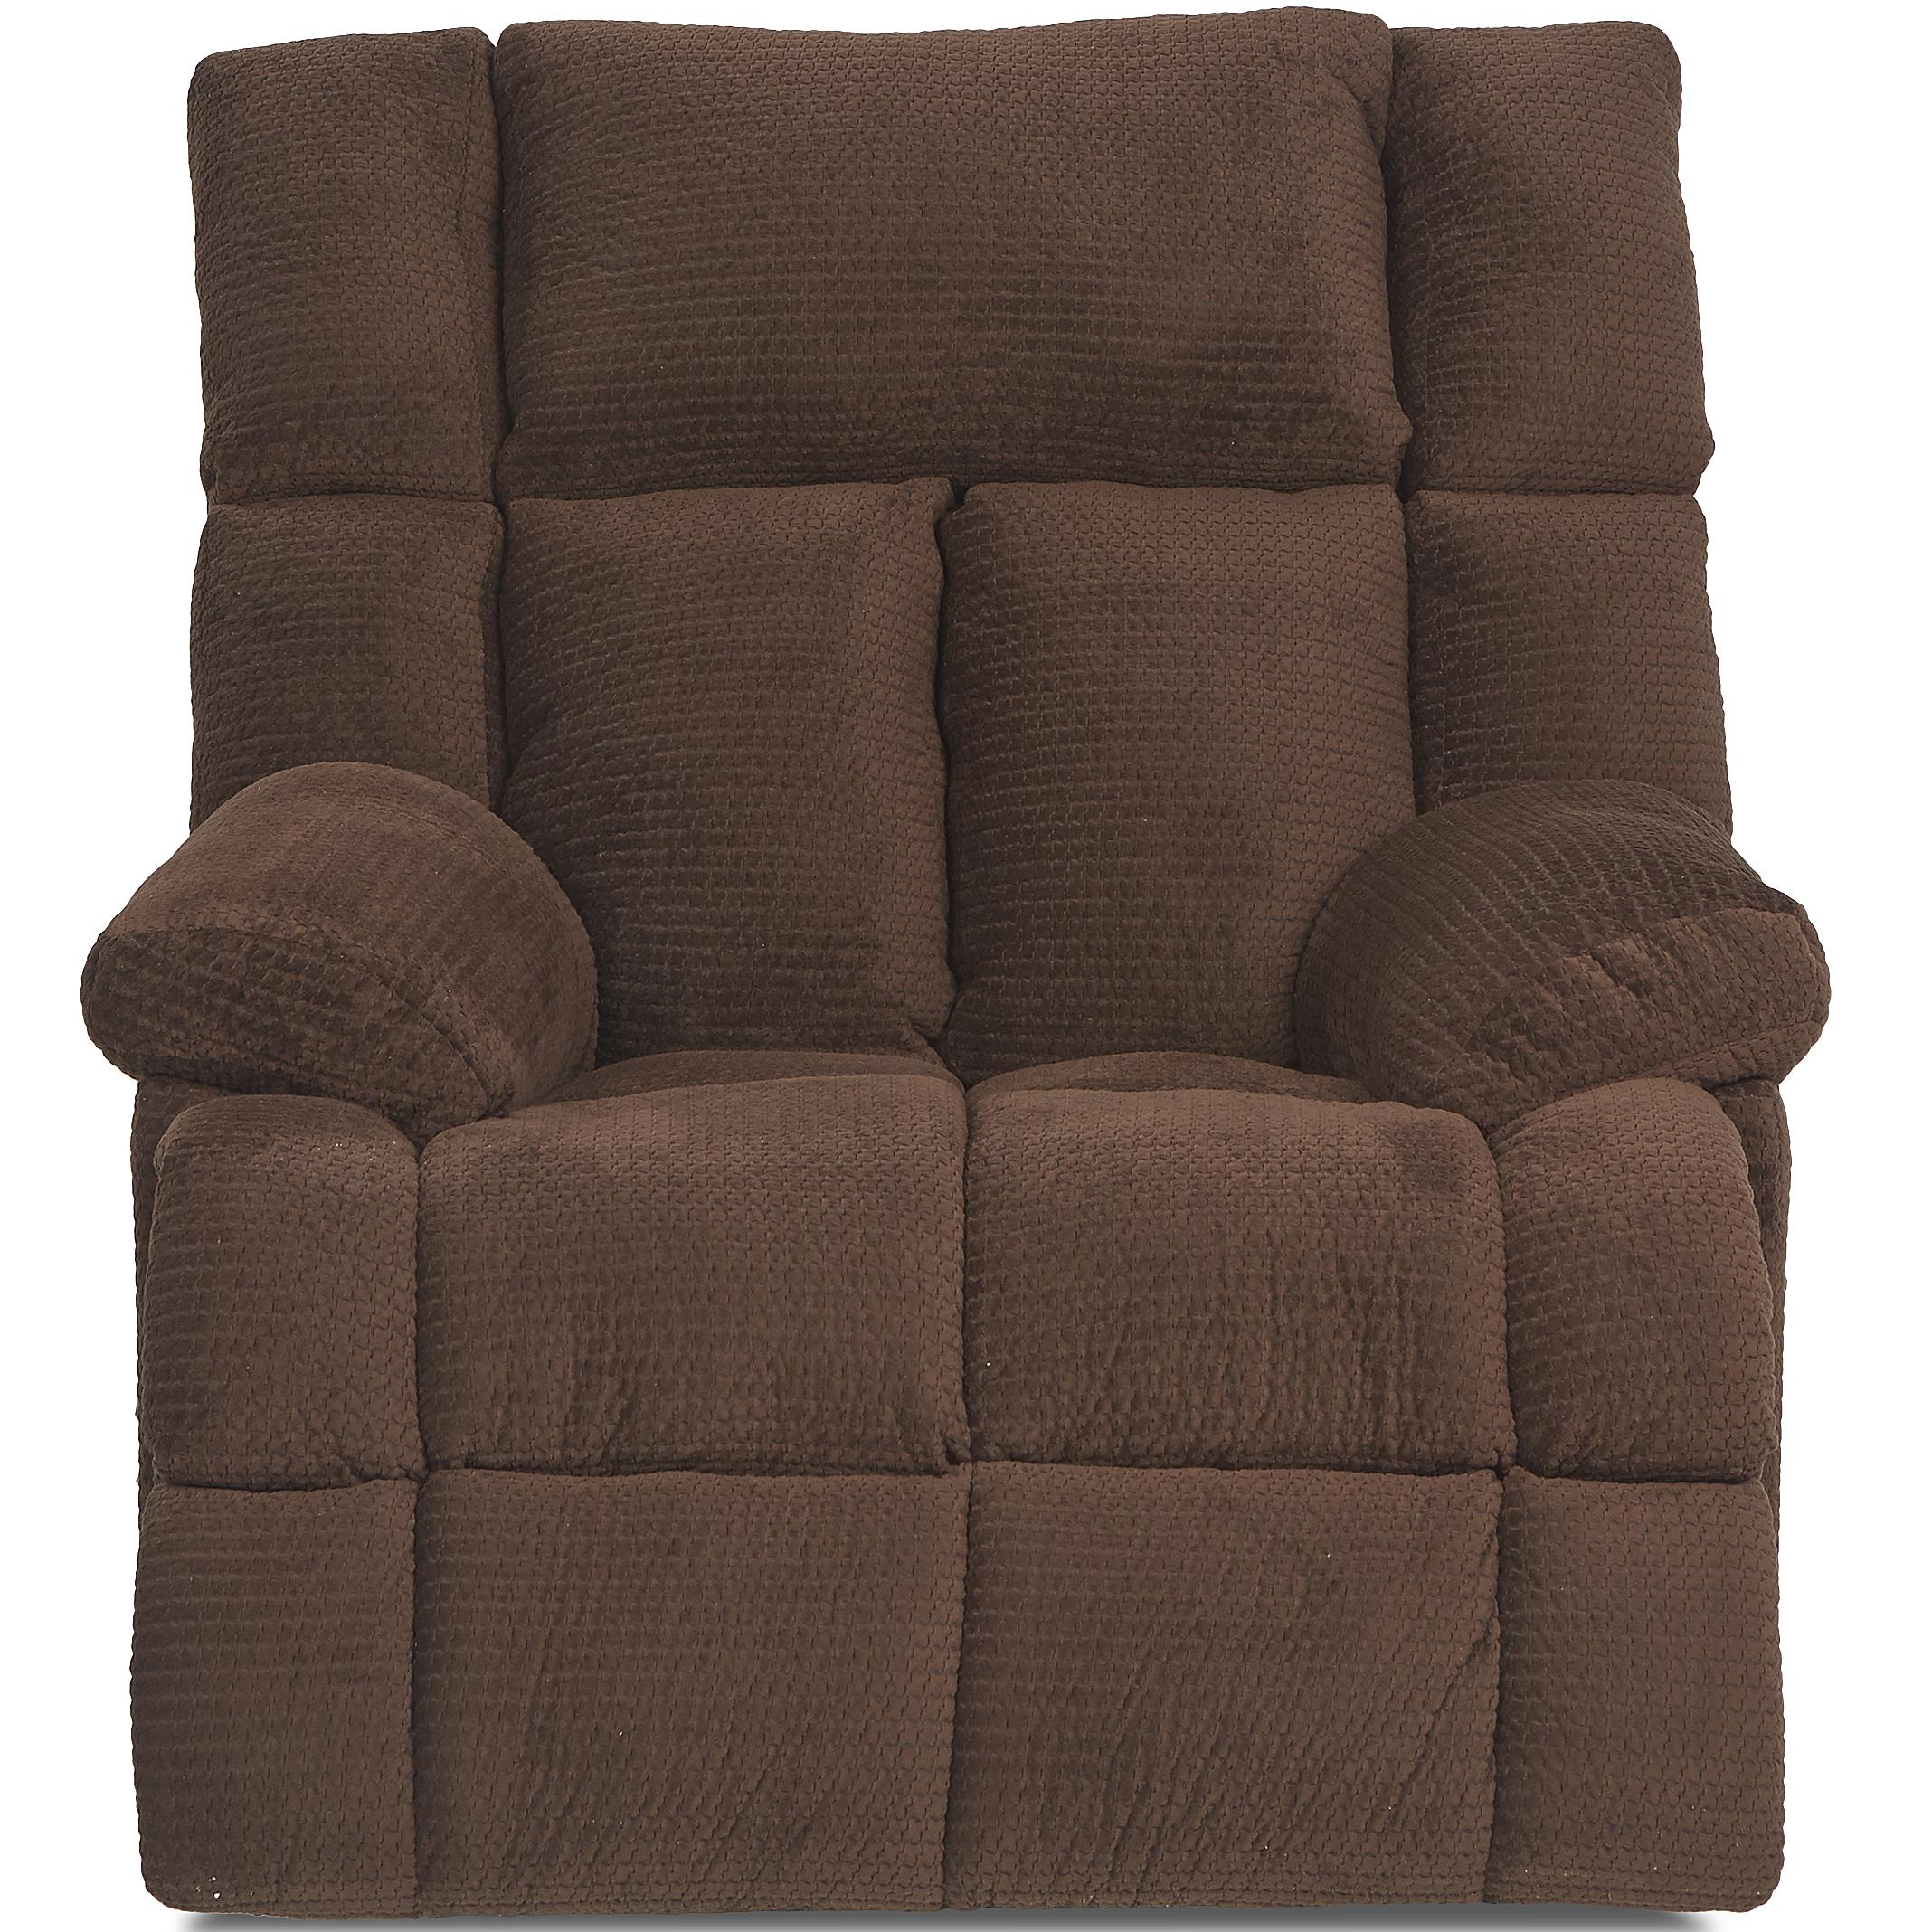 Klaussner General Casual Swivel Glider Recliner - Item Number: 87503H SGRC-MinxChocolate